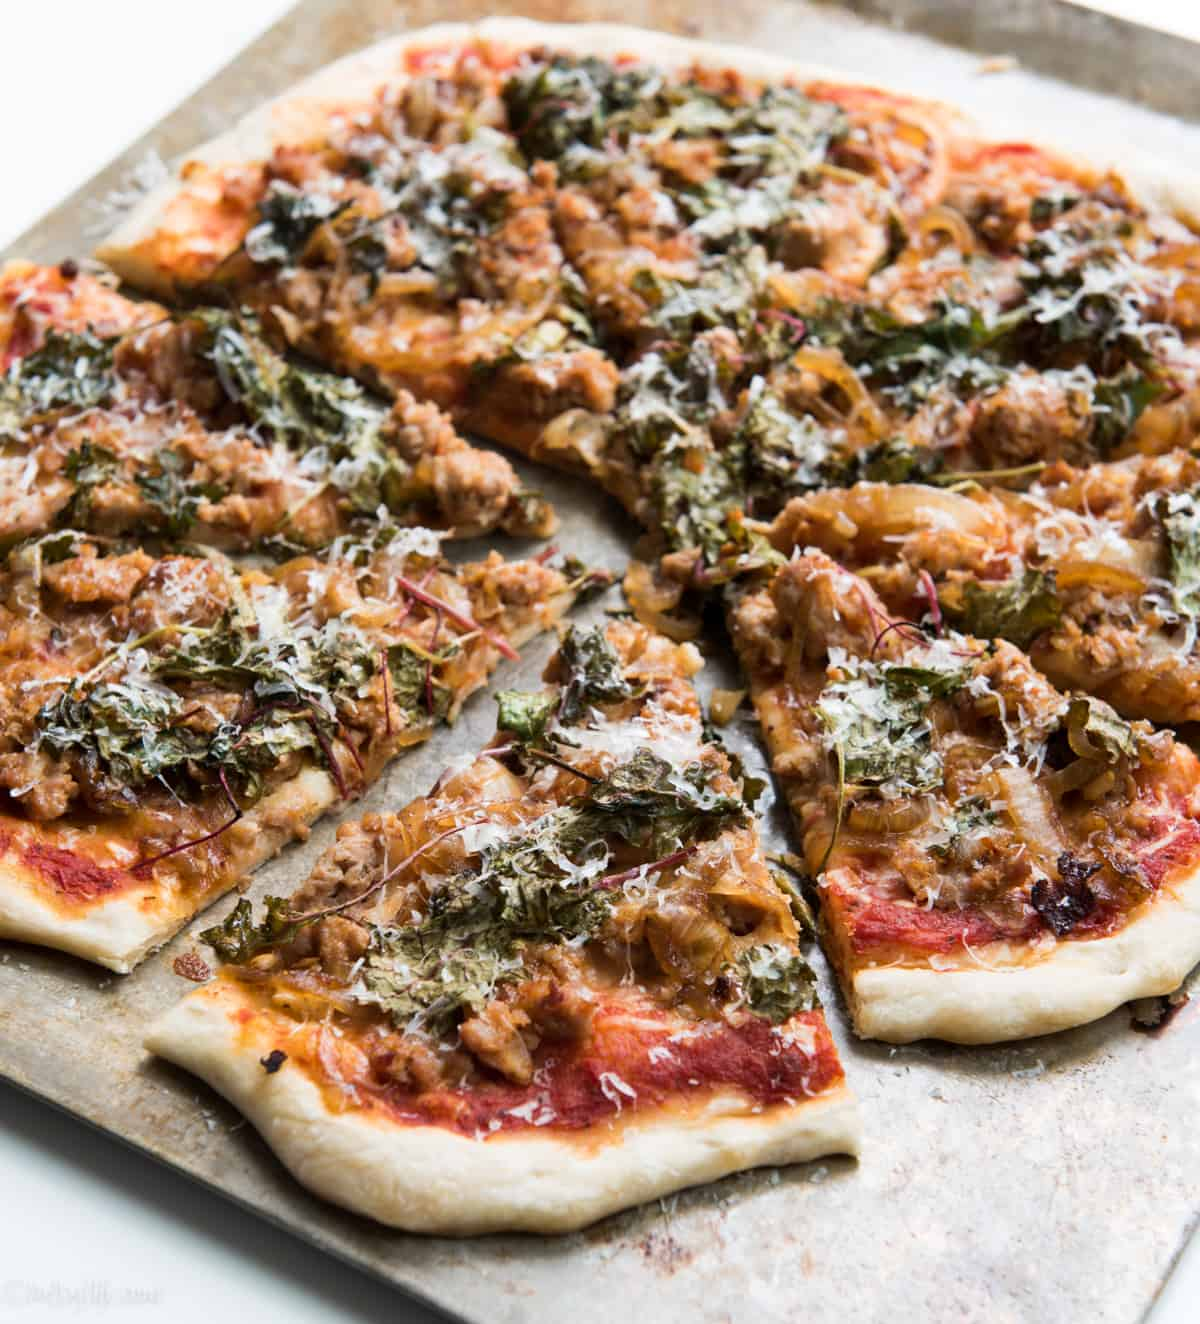 caramelized onion, kale and sausage pizza sliced on a baking sheet